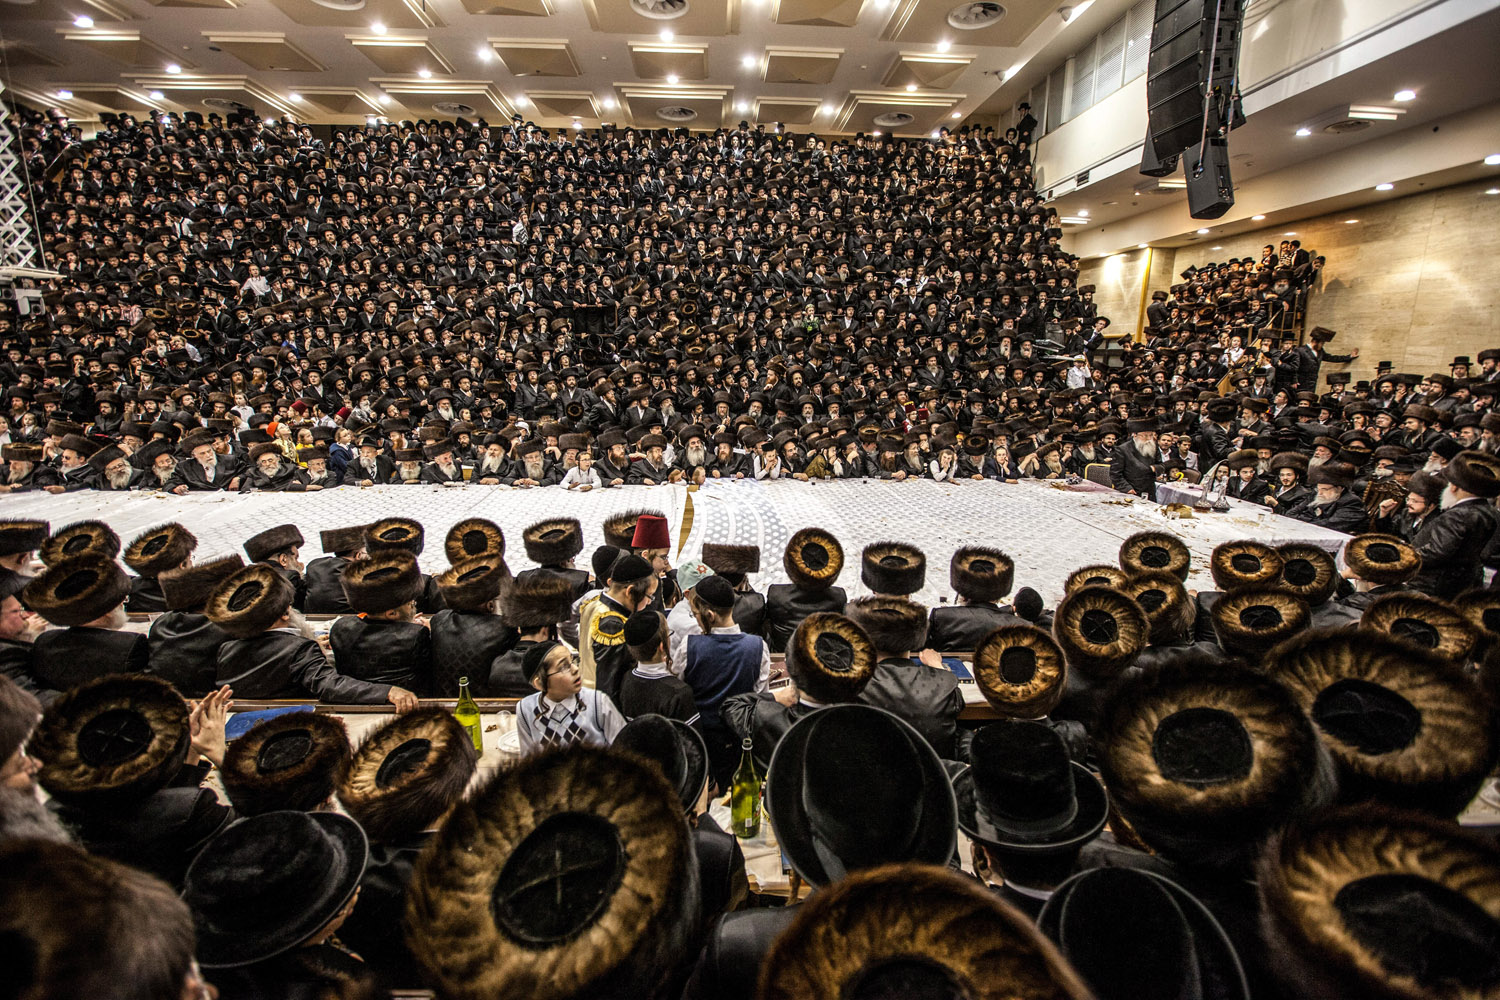 Mar. 17, 2014. Ultra Orthodox Jews from the Belz Hasidic group are taking part in a  Tisch , which is a public gathering of Hasidim around their Rabbi, during the Holiday celebration of Purim.